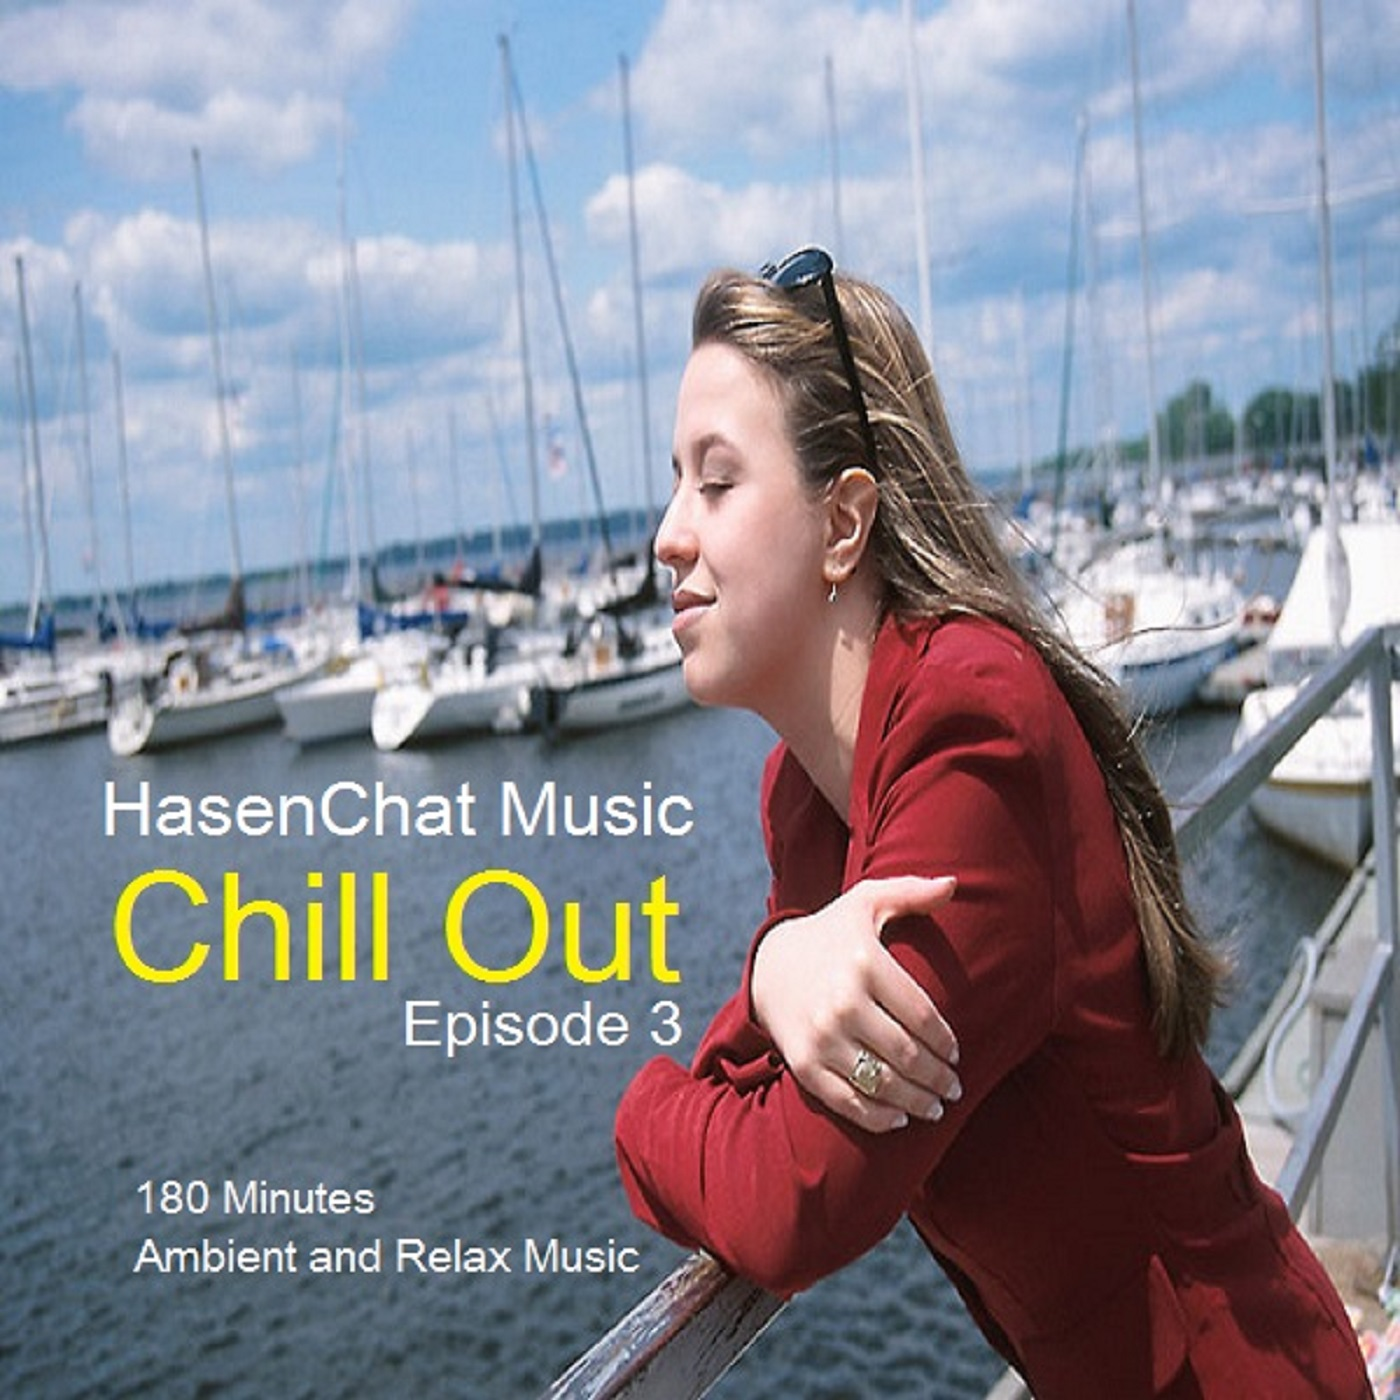 HasenChat Music - Chill Out - Episode 3